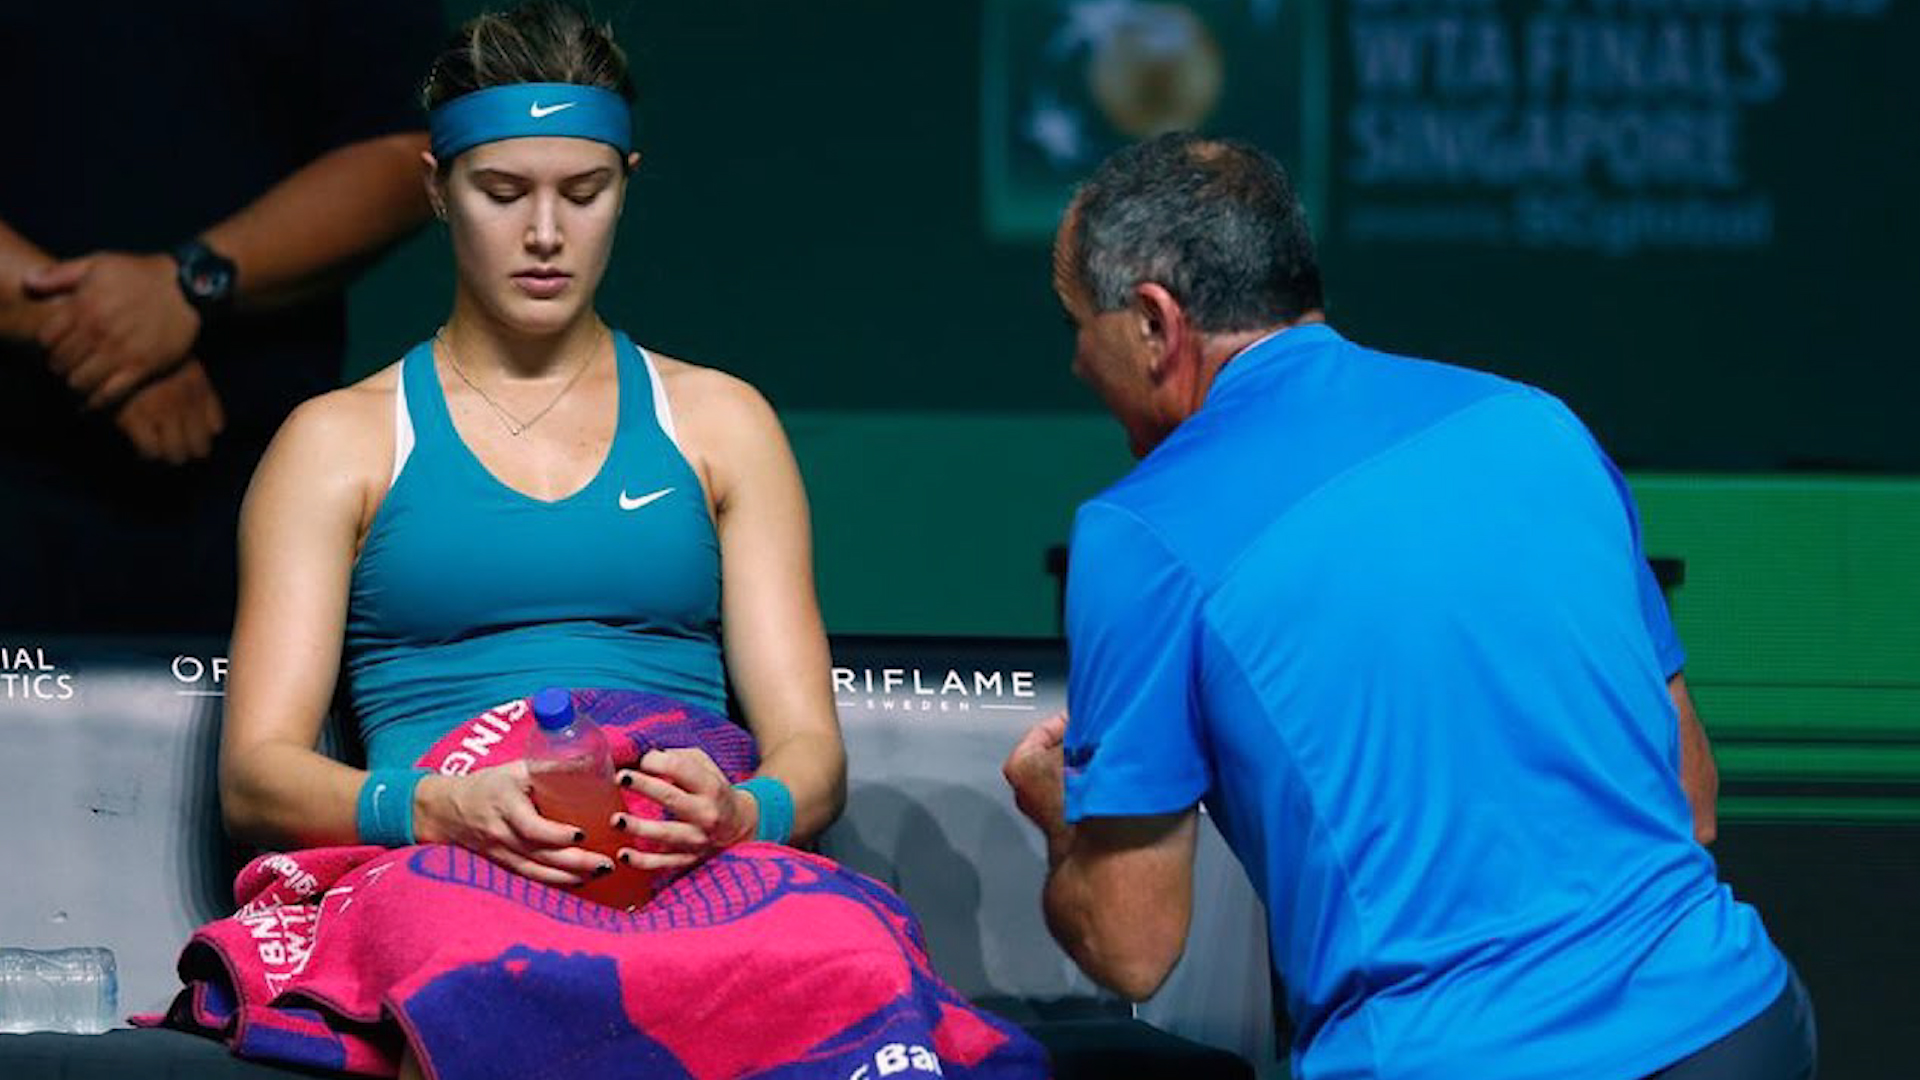 WTA to Trial Coaching From Stands